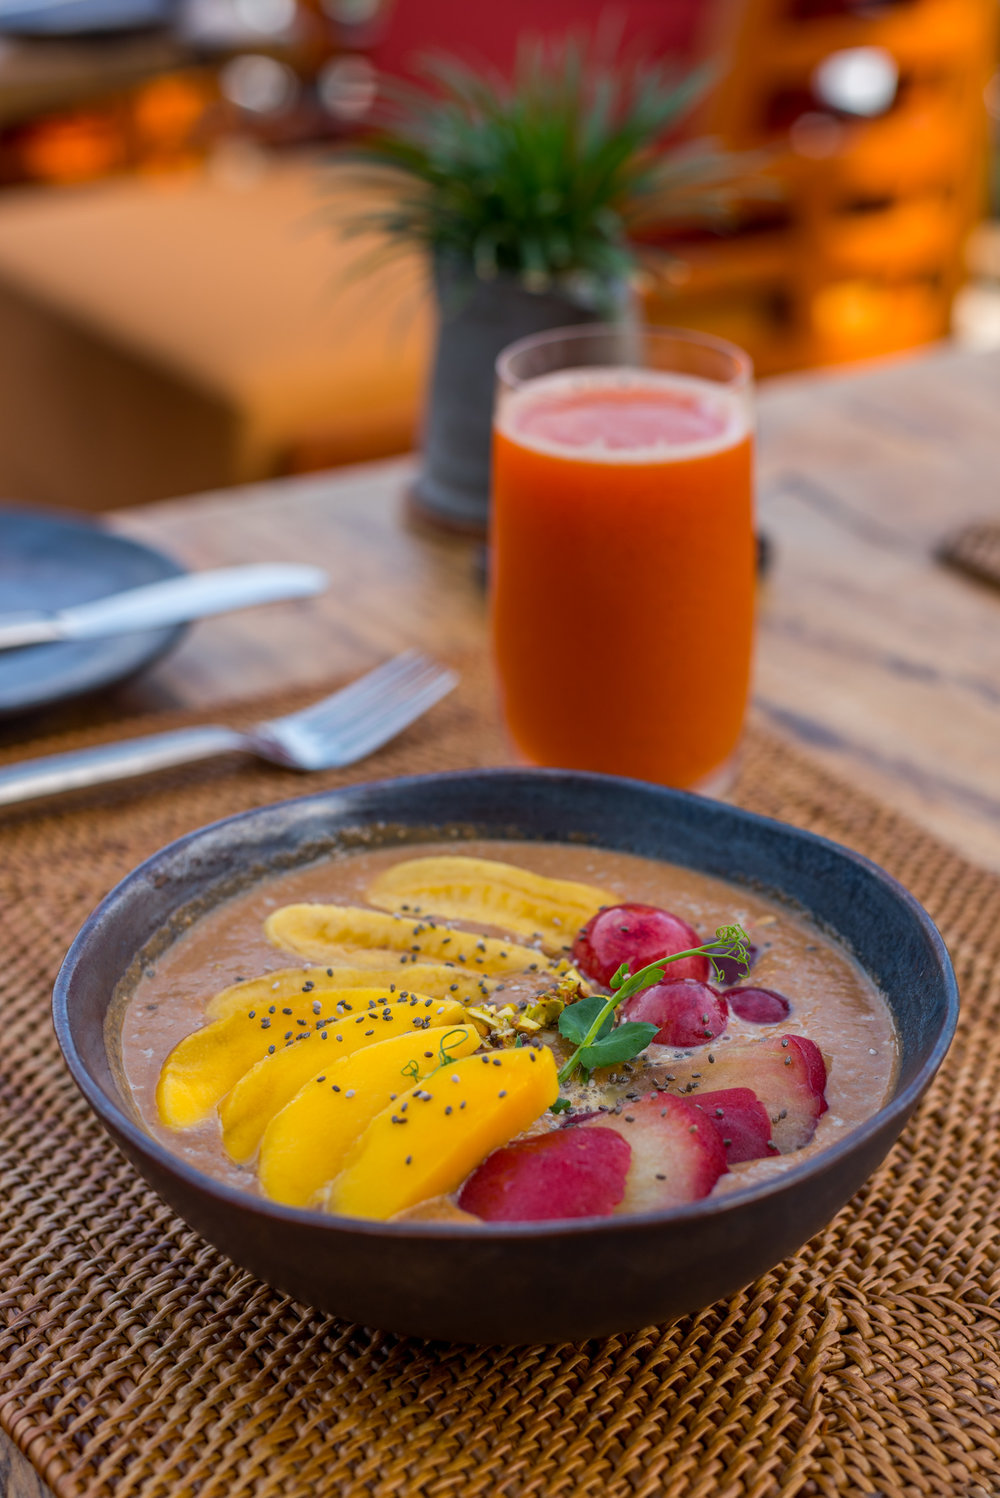 Fresh juices and quinoa porridge for breakfast